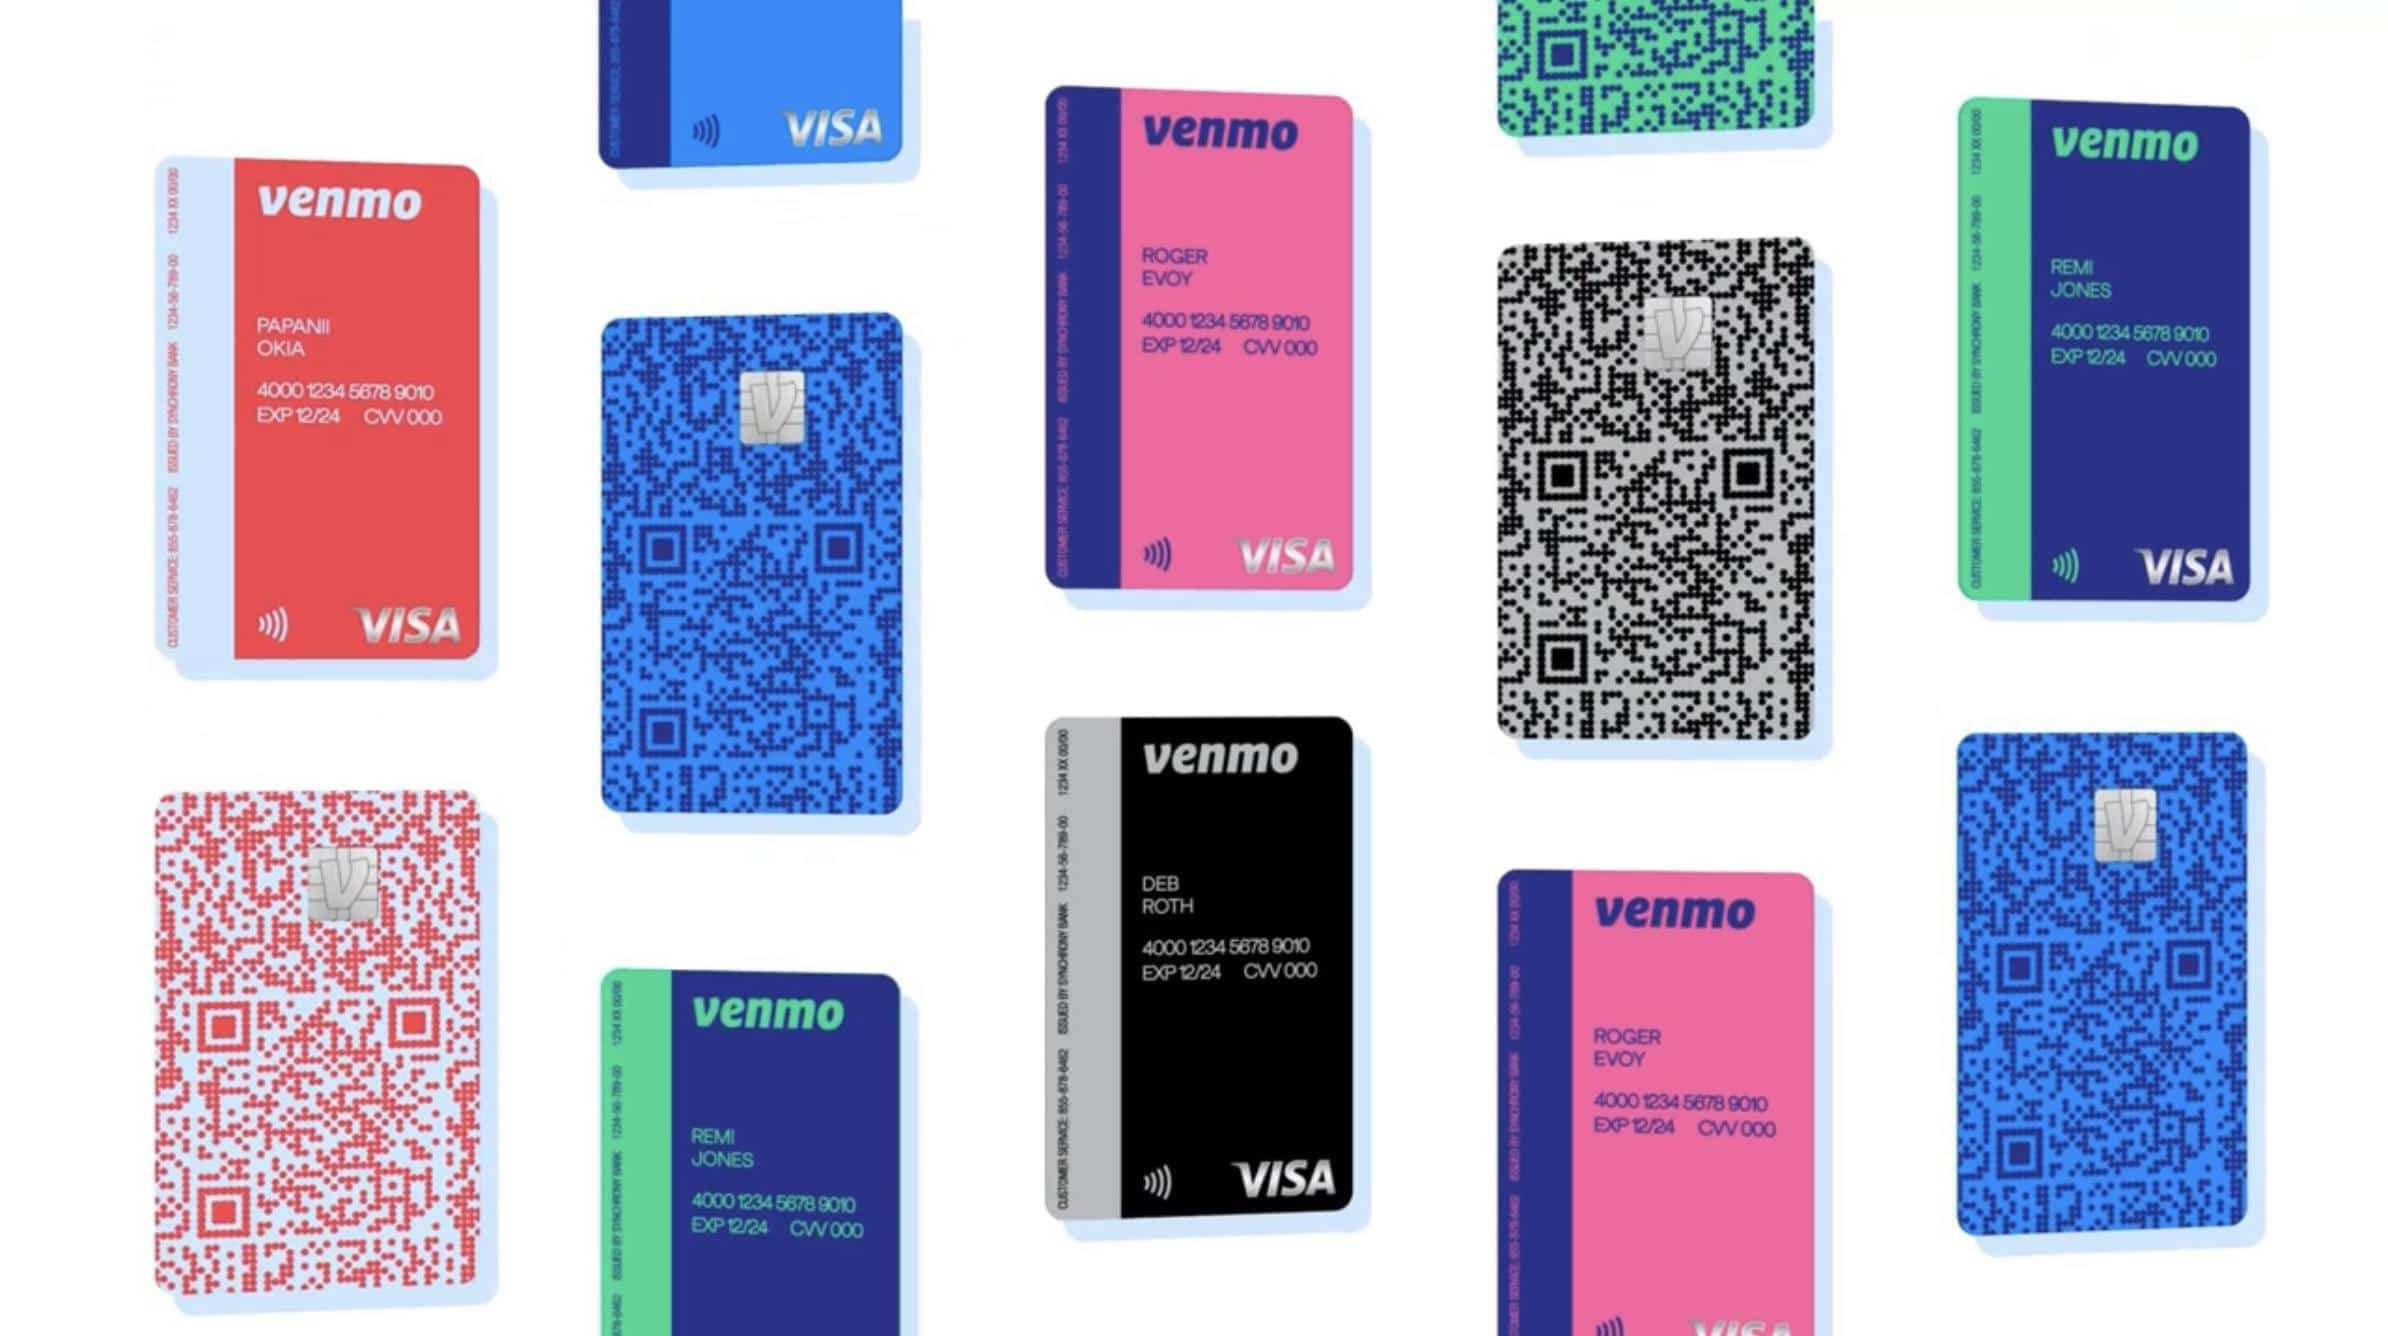 The Venmo Credit Card is Here and It's Not So Bad